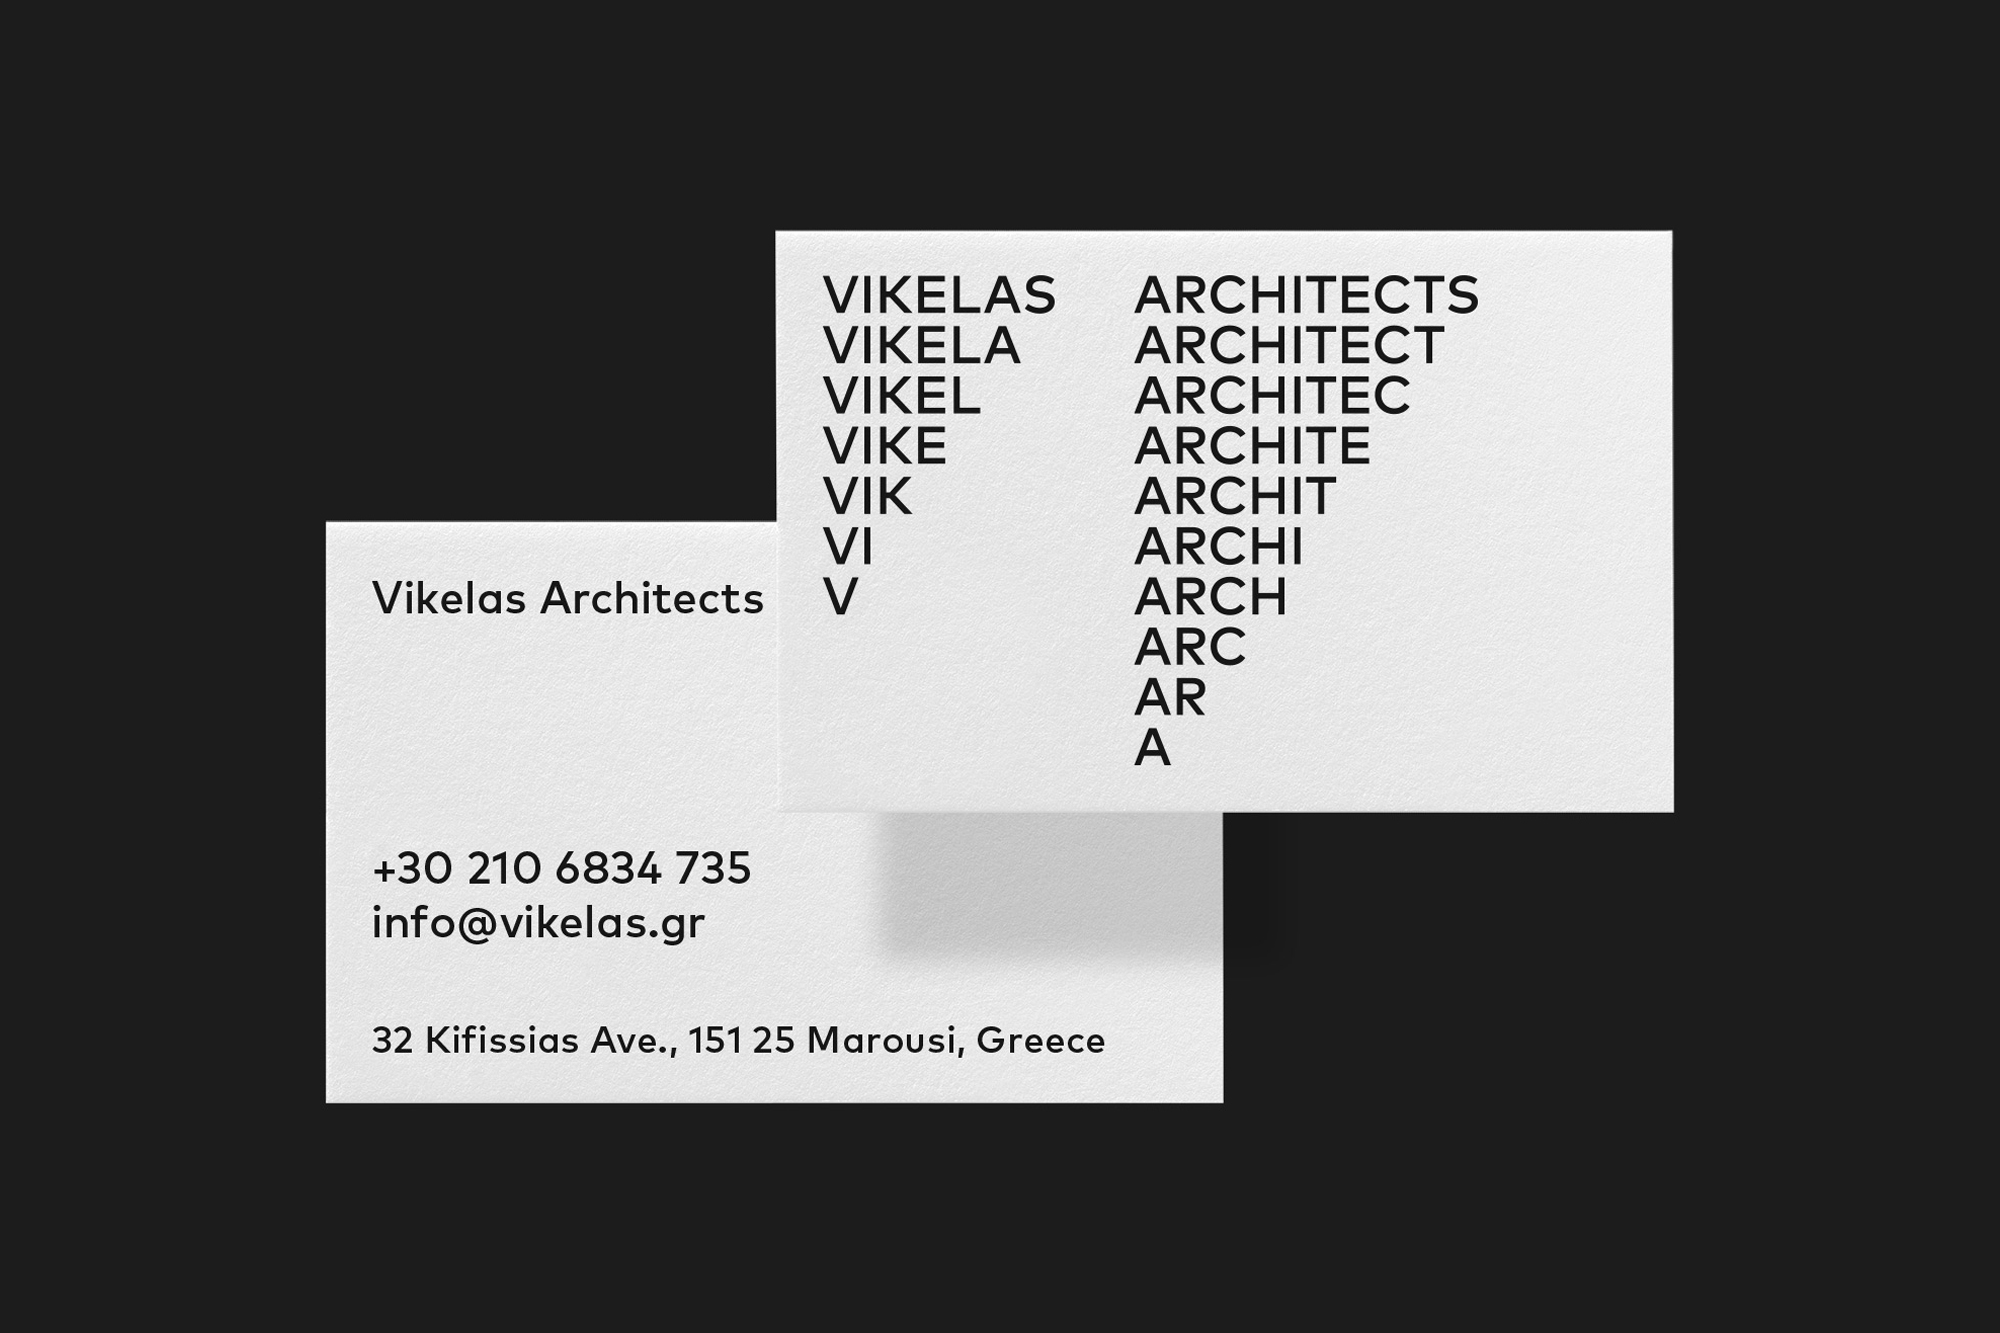 VikelasArchitects_2.jpg